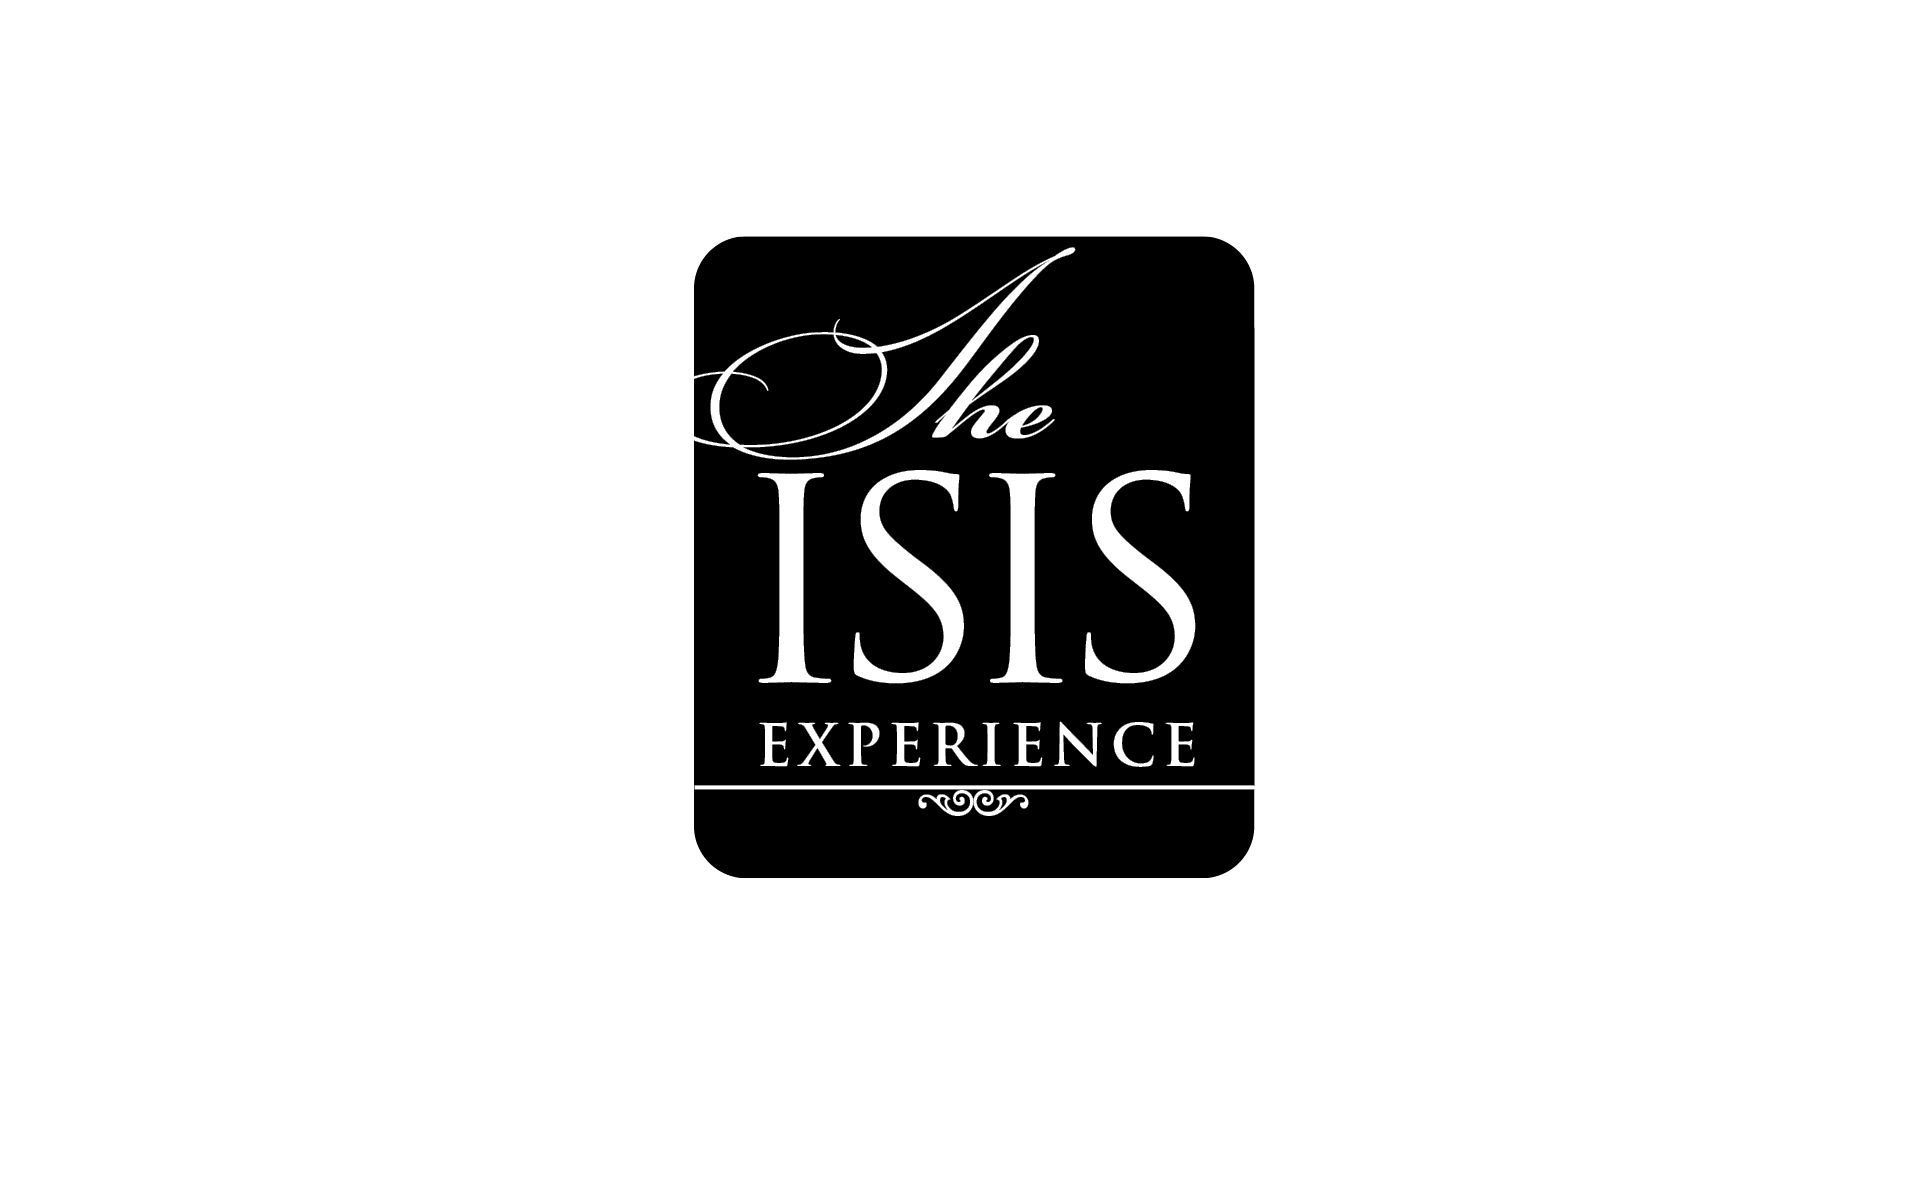 THE ISIS EXPERIENCE LOGO www.isisexperience.com